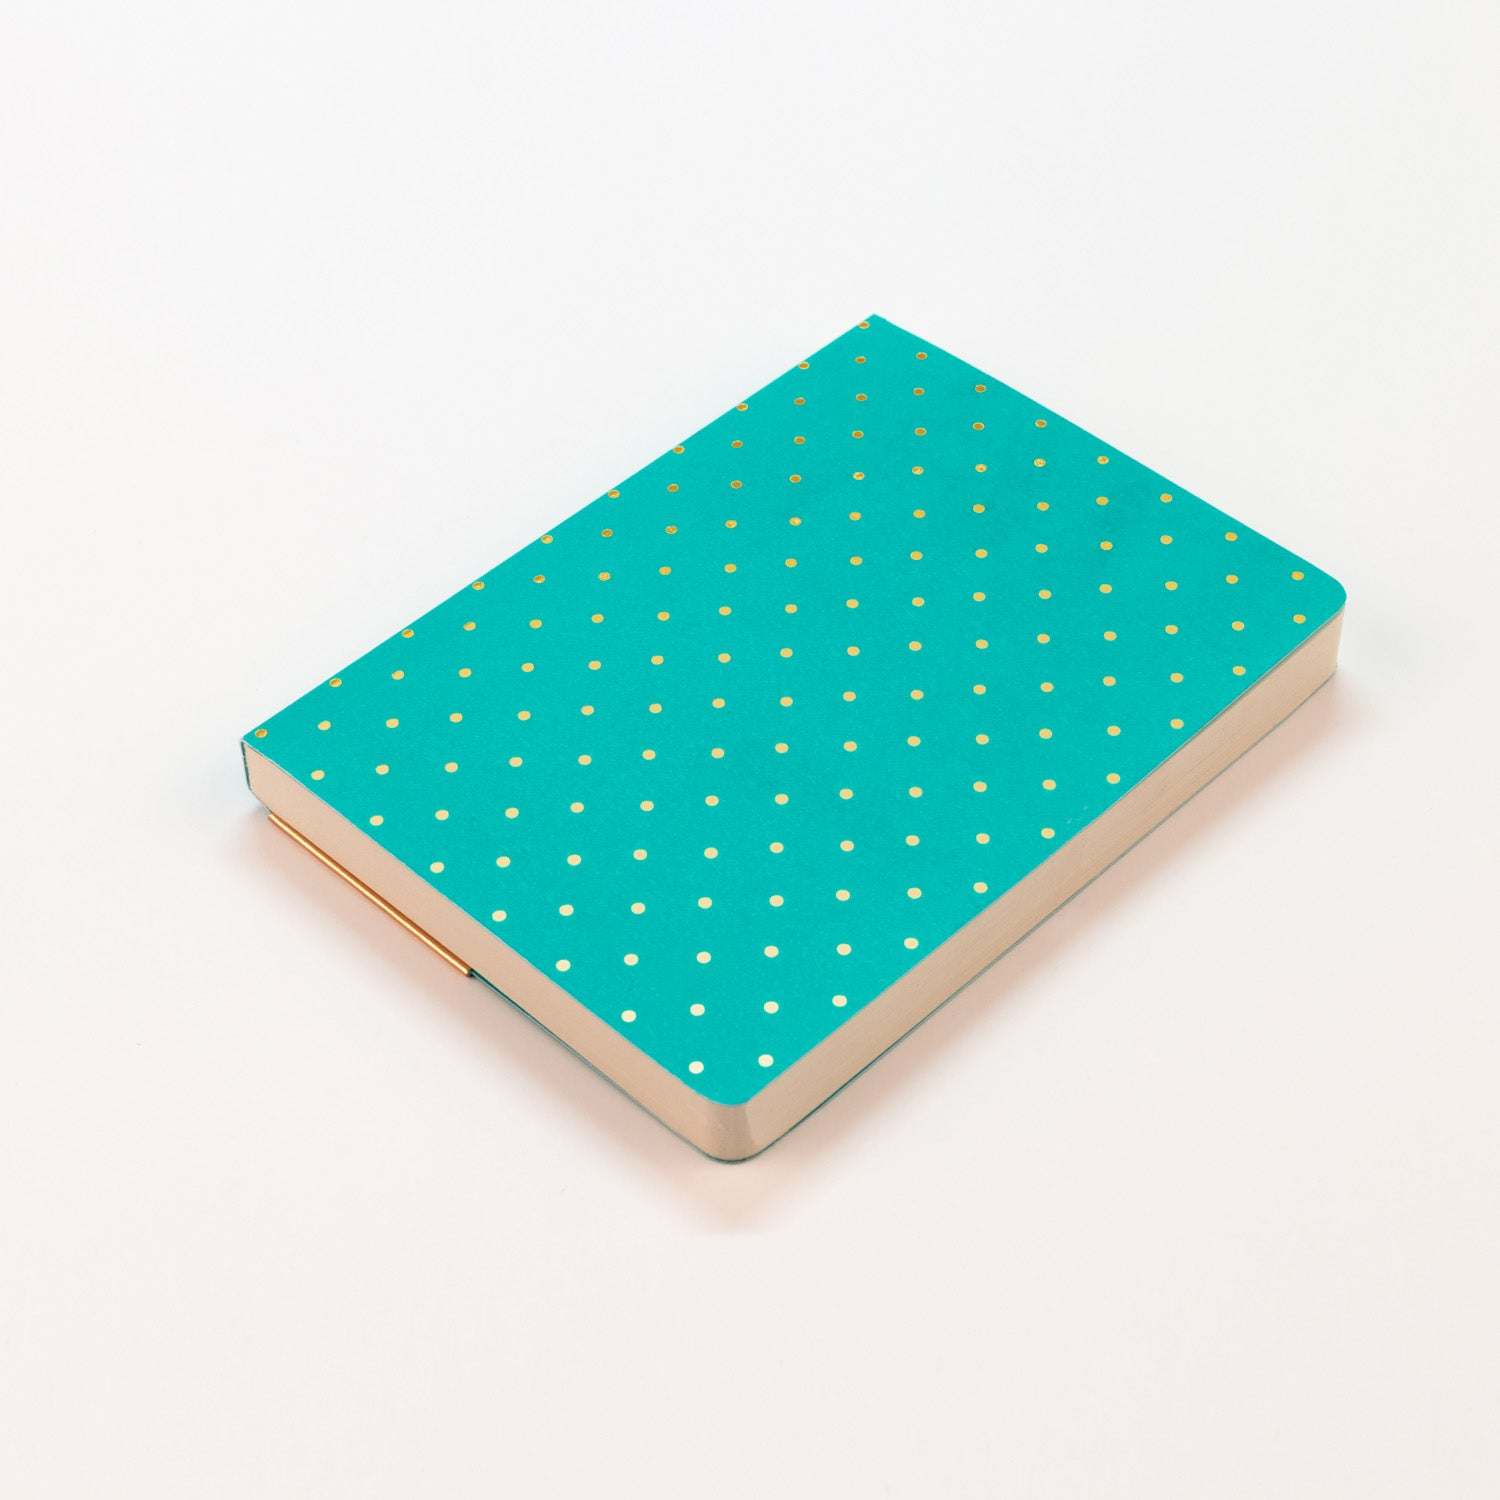 Shimmer Teal A6 Notebook - MissieMay